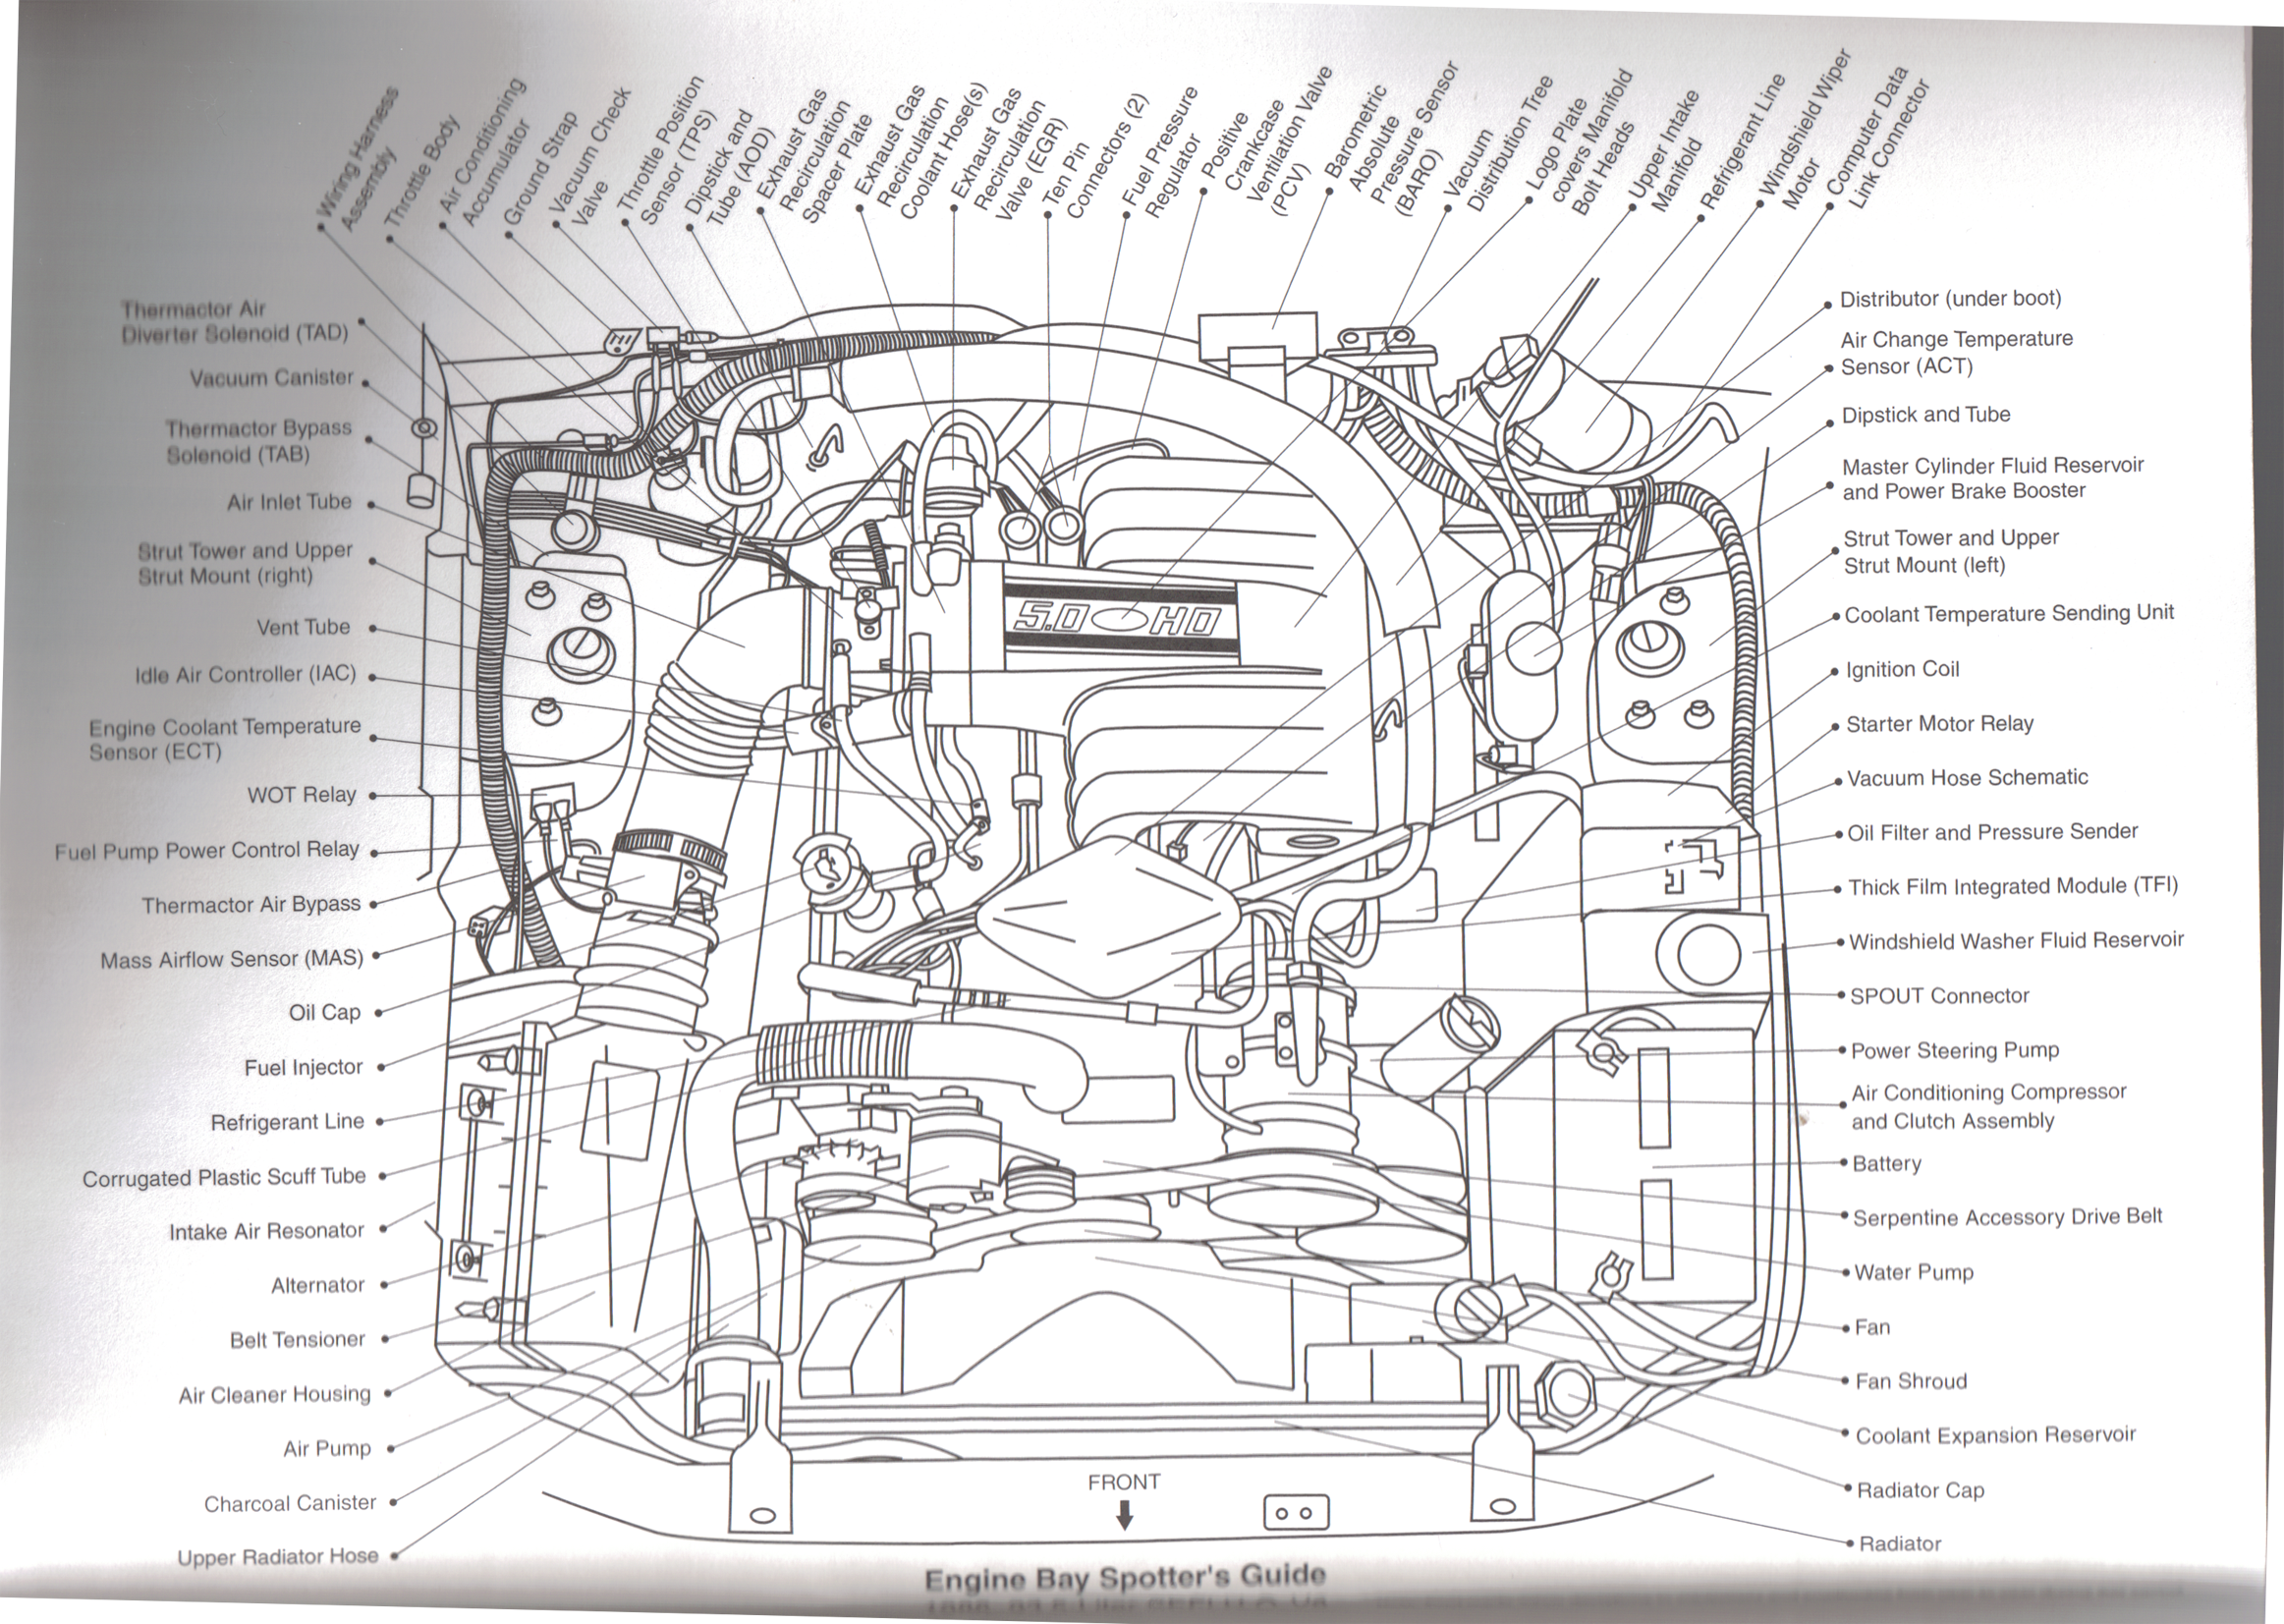 86 Dodge Engine Compartment Diagram Wiring Library 1 9 Sefi 1987 1993 Foxbody 50 V8 Part